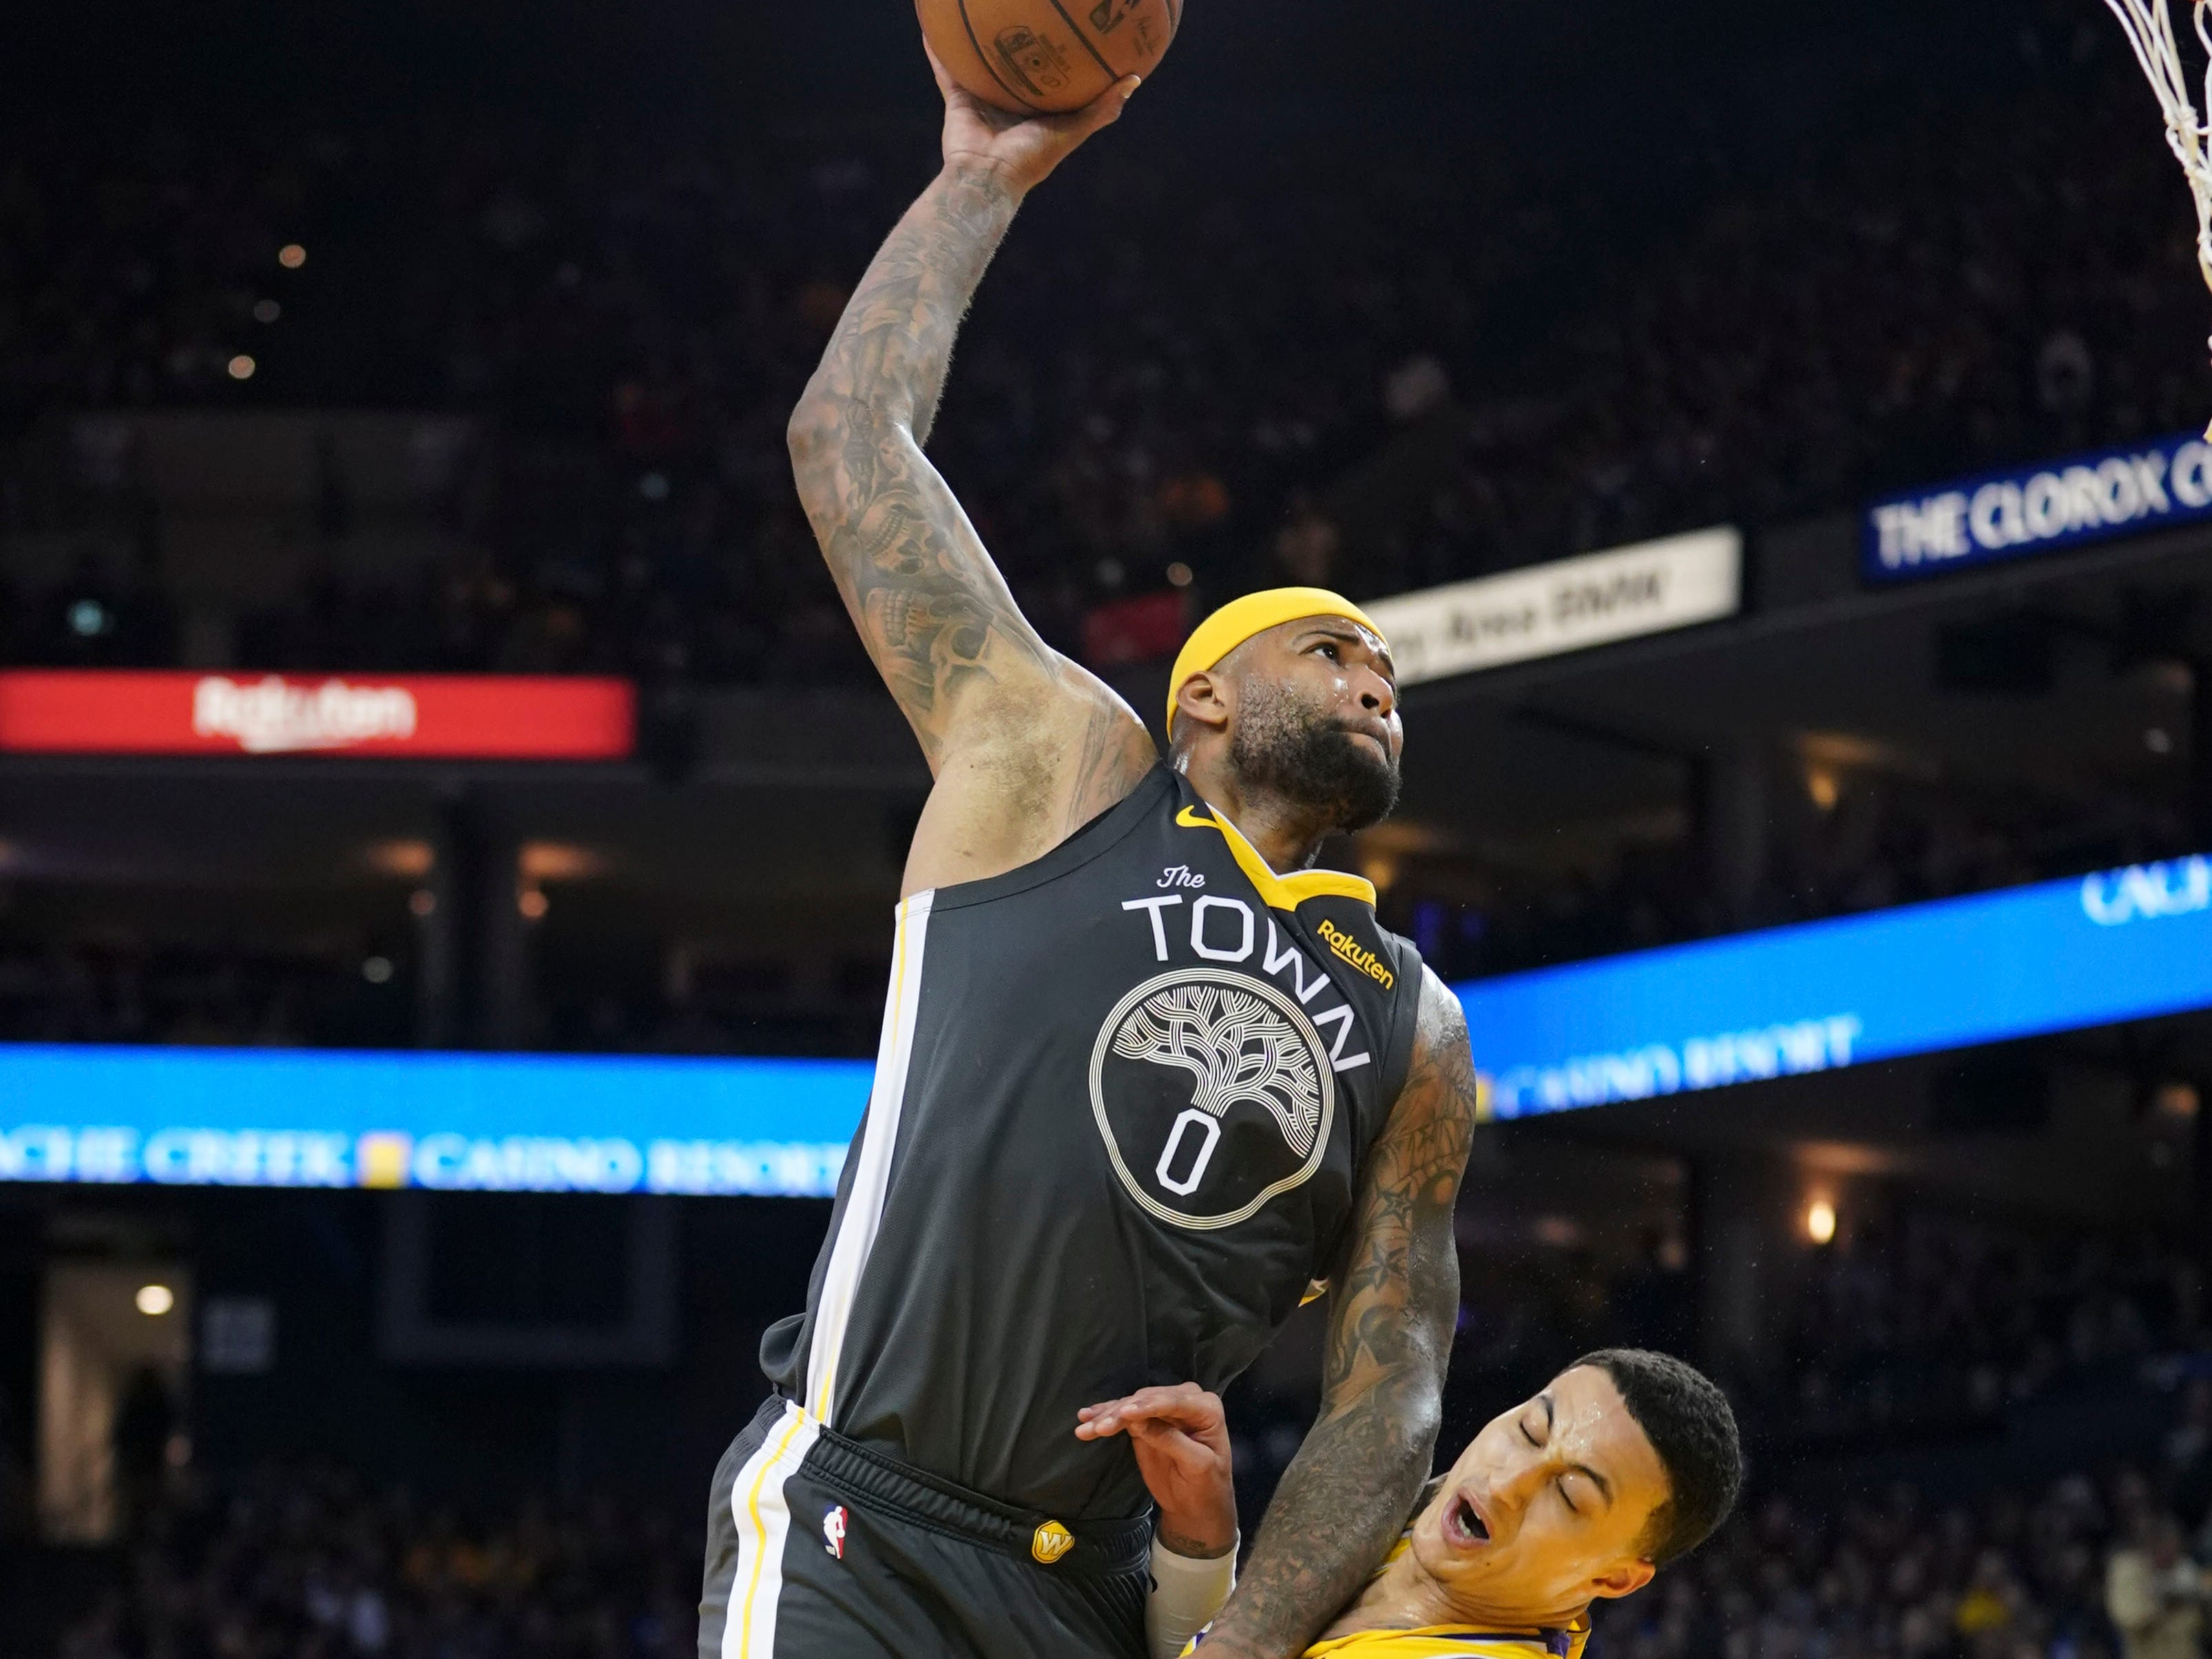 Feb. 2: Warriors center DeMarcus Cousins destroys Lakers defender Kyle Kuzma with a monster one-handed slam at Oracle Arena in Oakland.